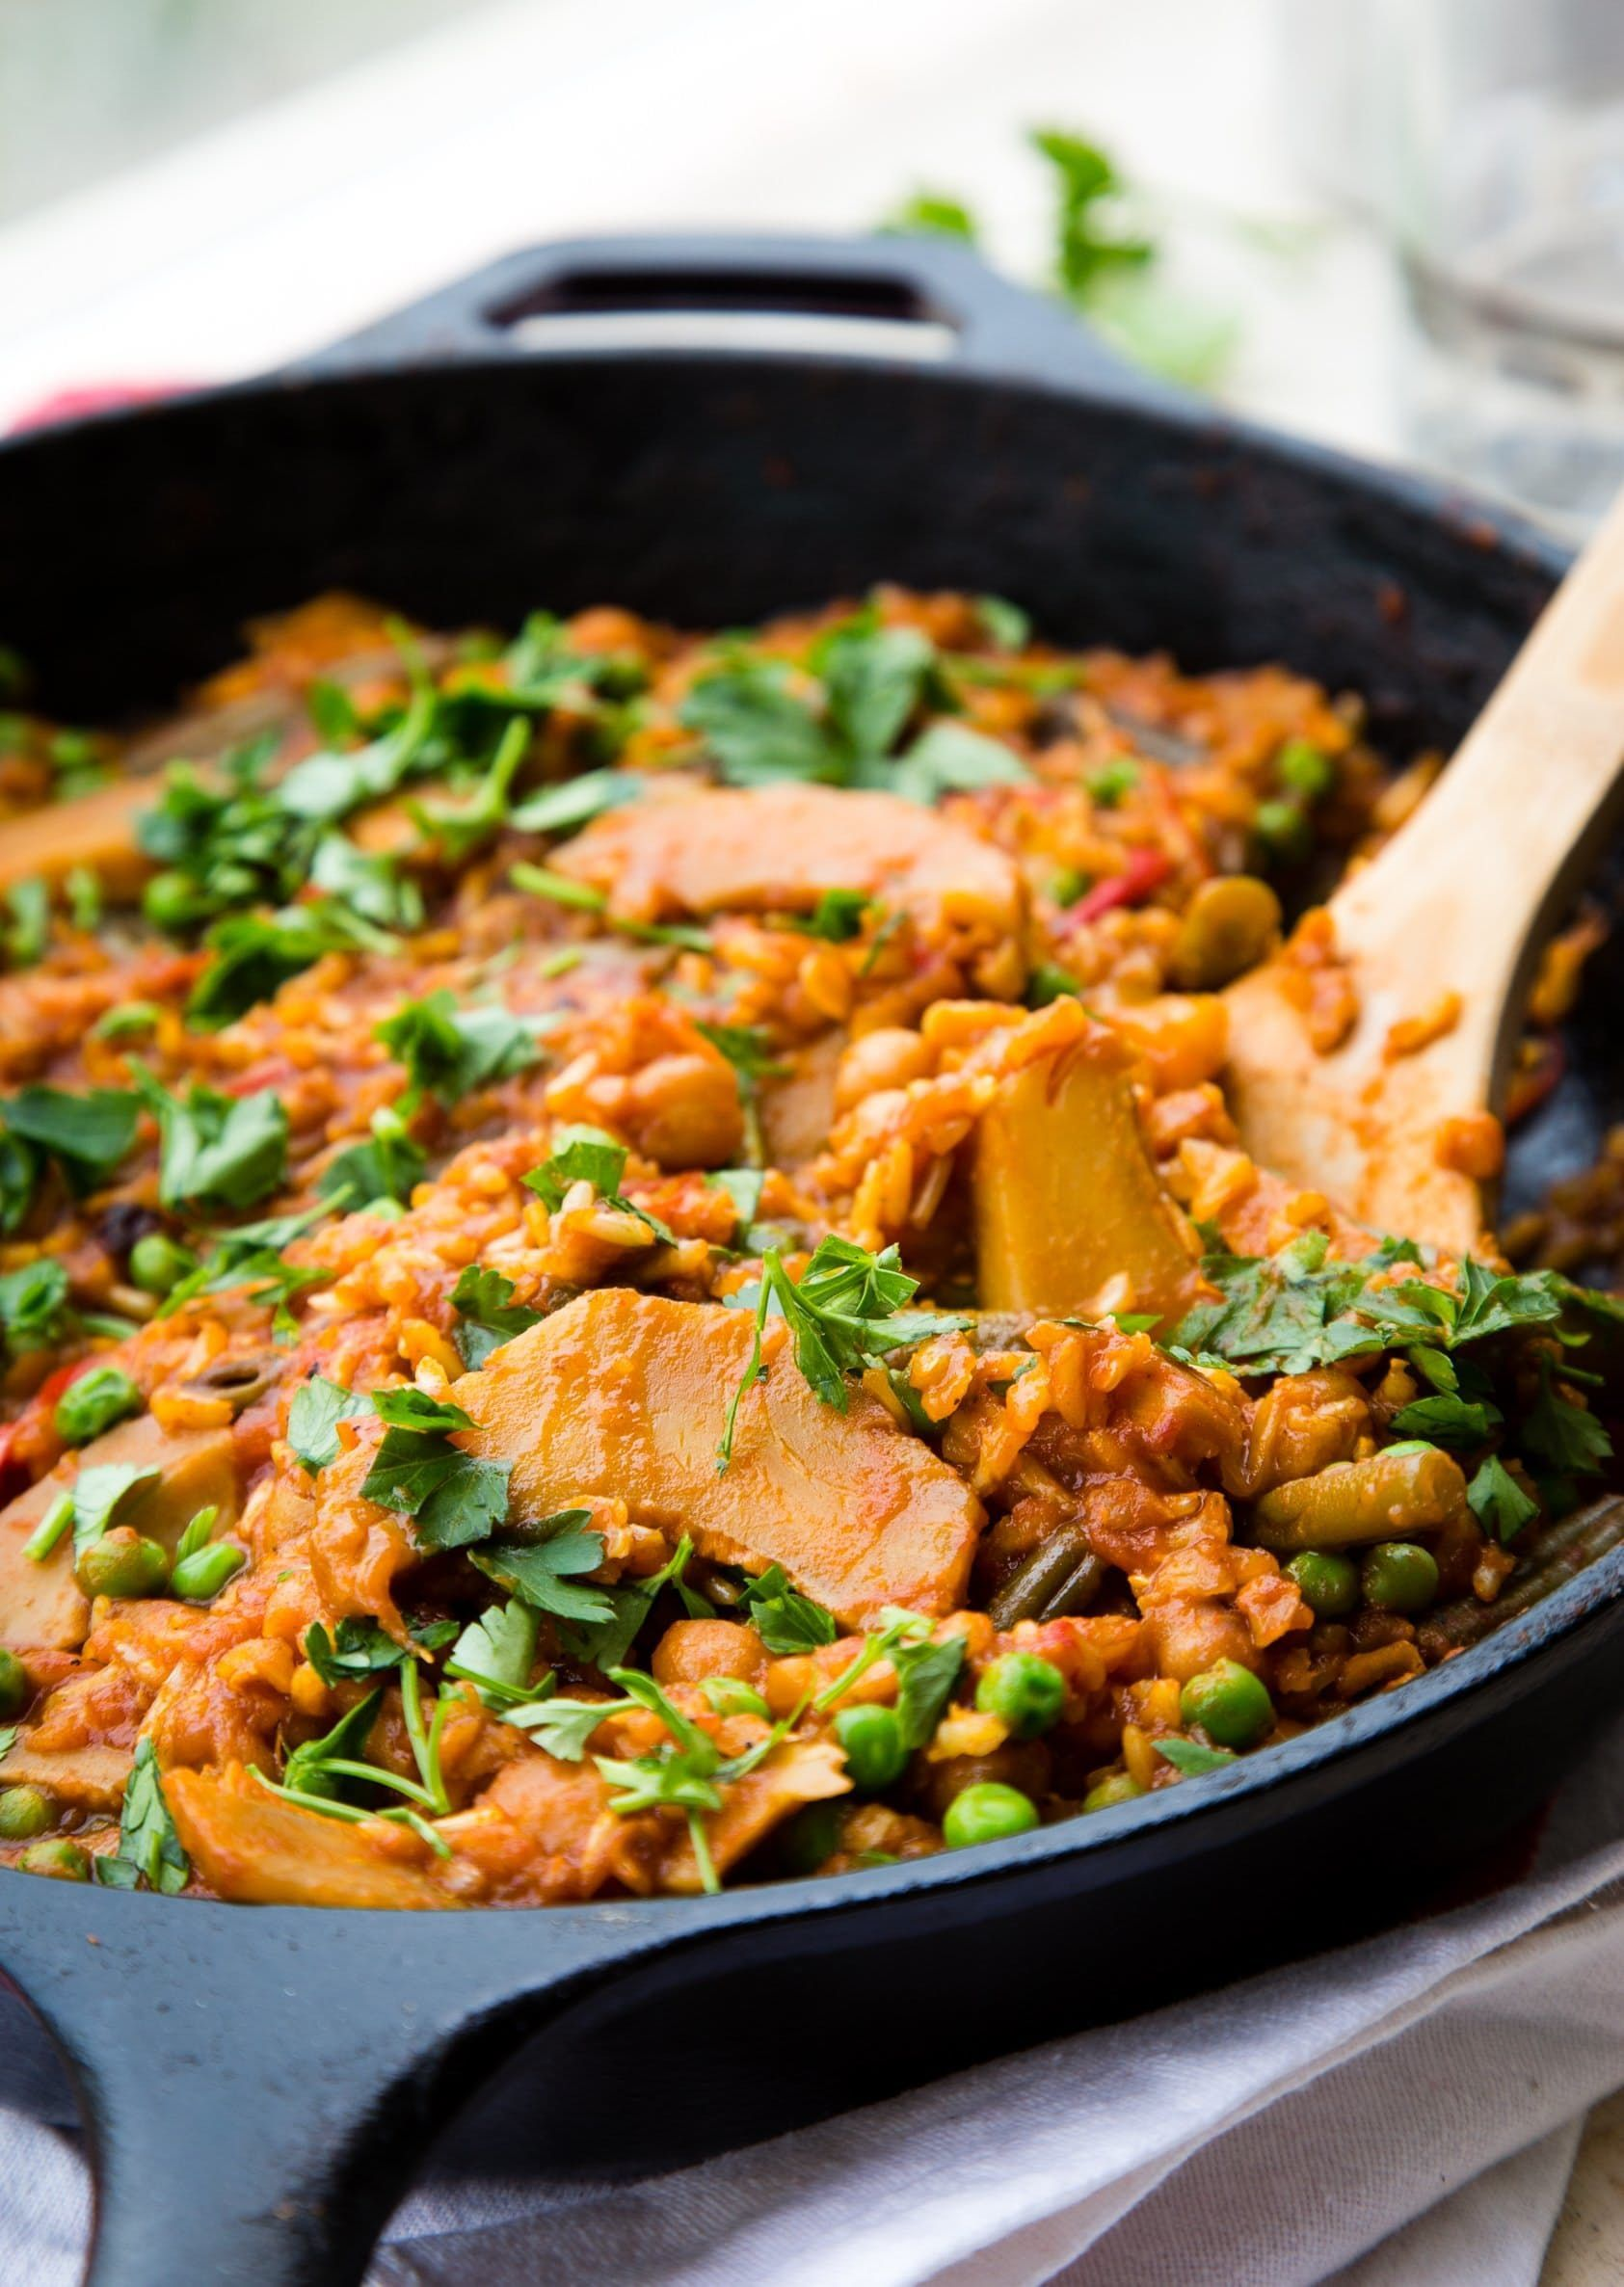 Paella with Chickpeas Recipe: Vegetarian Paella with Red Peppers & Chickpeas — Vegetarian Weeknight Dinner Recipes from The KitchnRecipe: Vegetarian Paella with Red Peppers & Chickpeas — Vegetarian Weeknight Dinner Recipes from The Kitchn